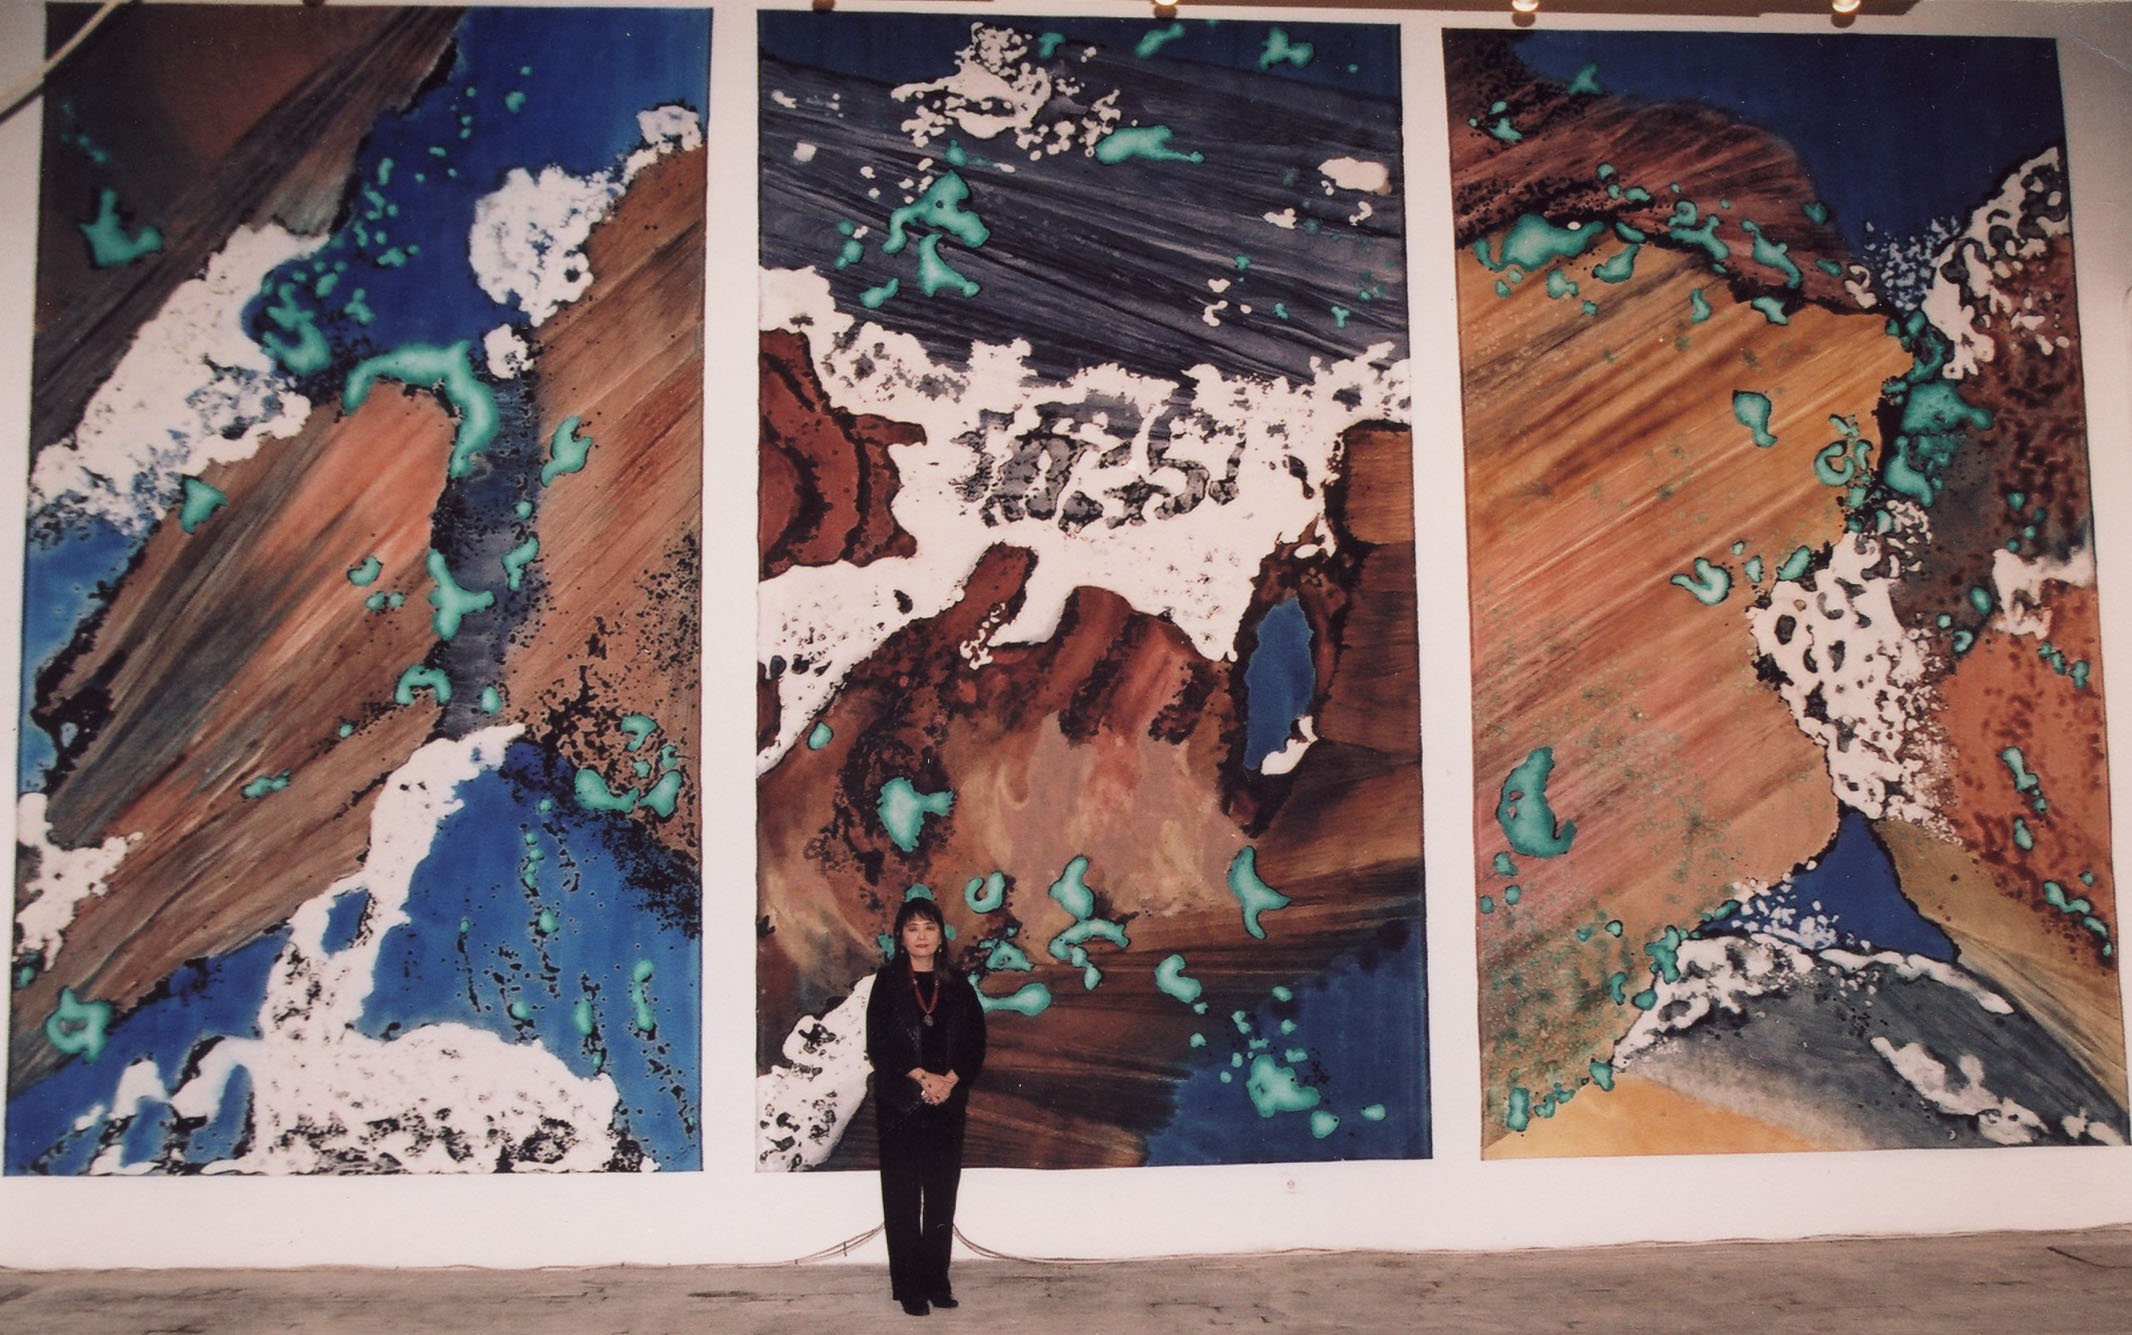 """""""Turquoise Floating I, II, III"""" with artist, 2003, Turquoise Floating Series, acrylic on canvas, tryptych, each 18 x 10 feet (549 x 305 cm)."""